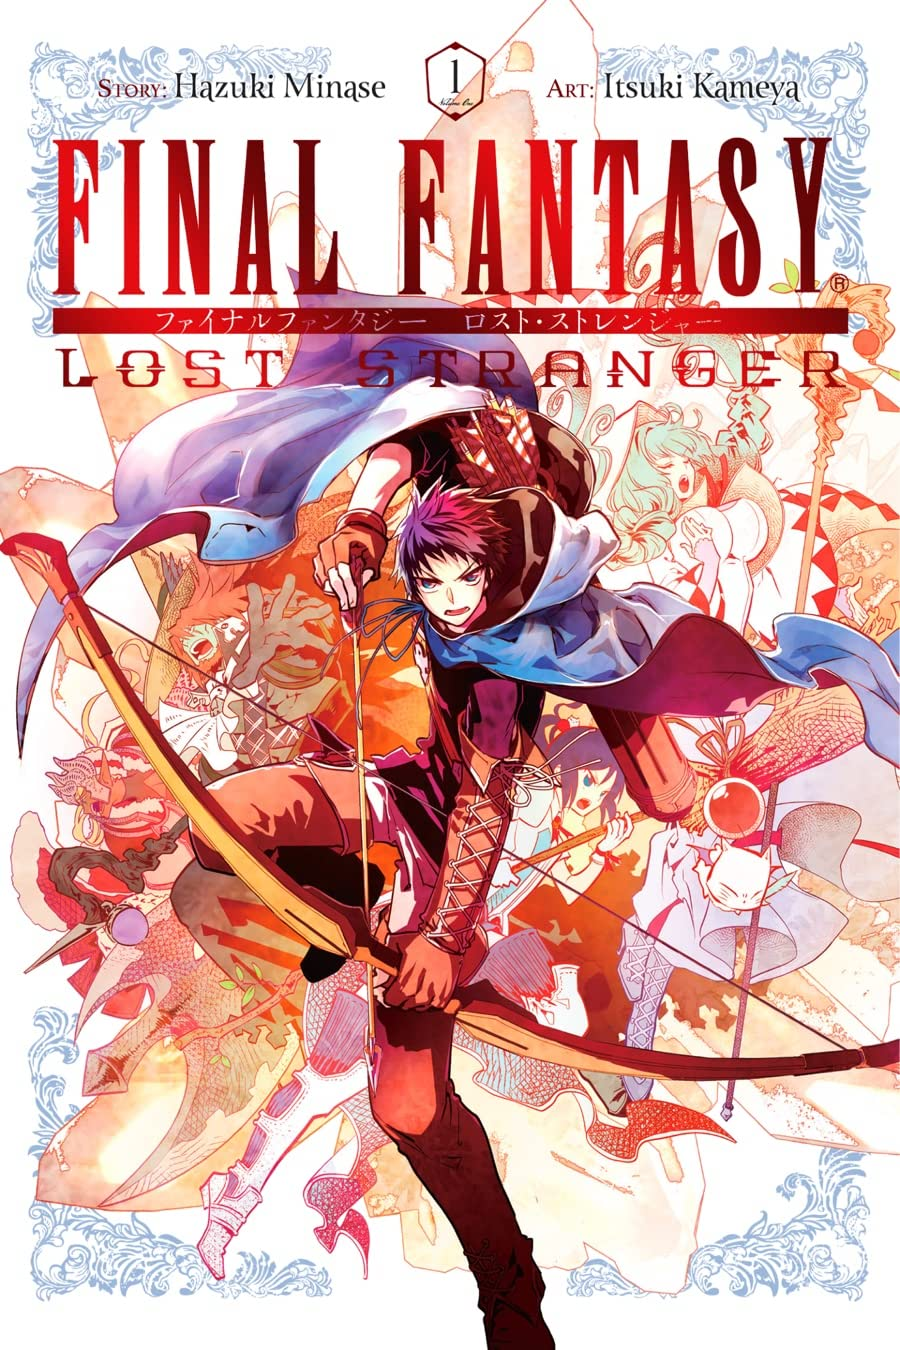 Final Fantasy Lost Stranger Vol. 1